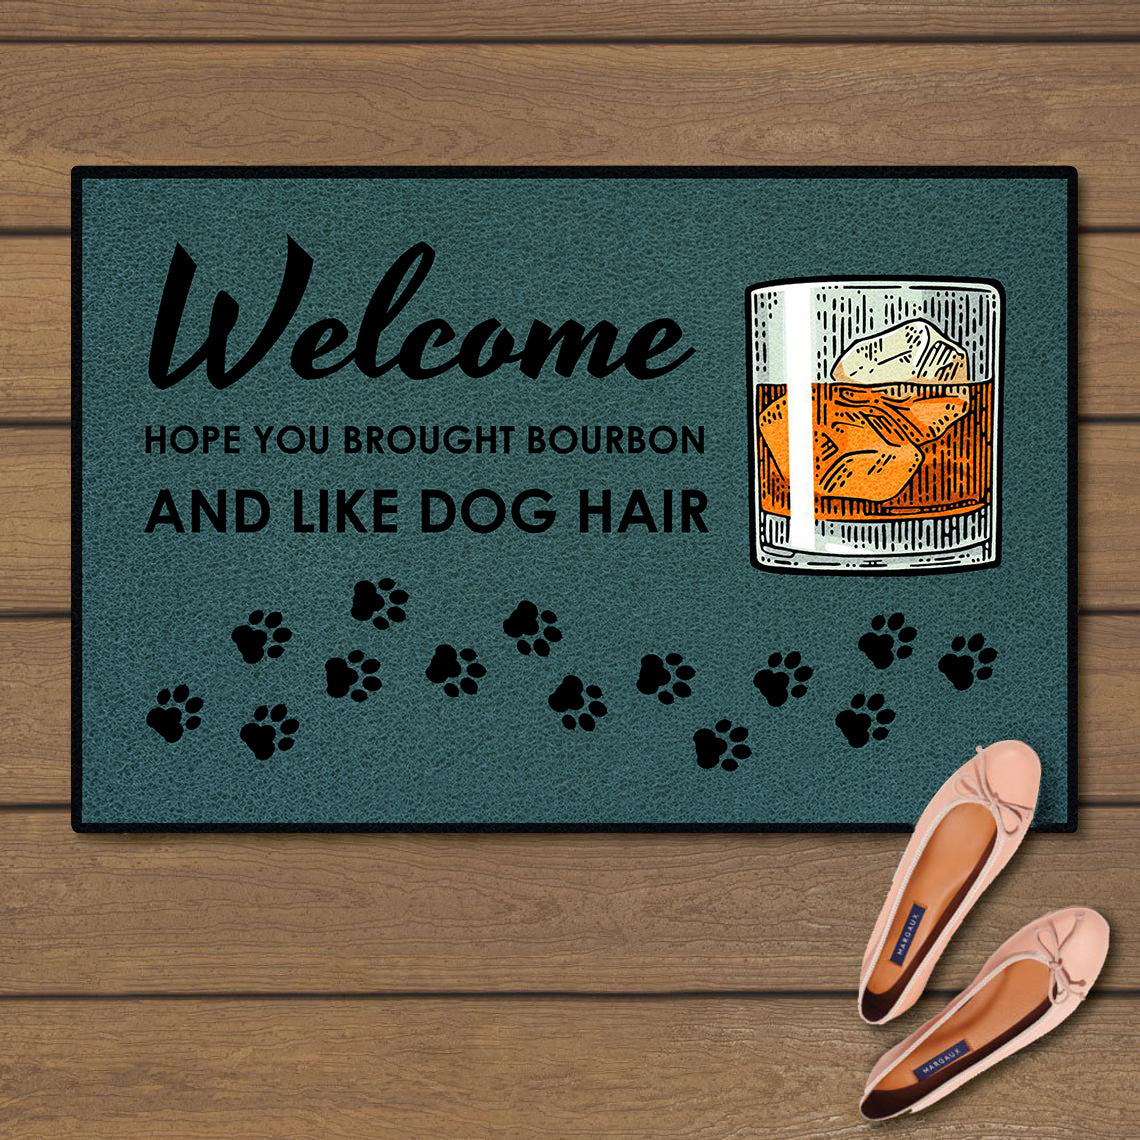 Welcome you brought bourbon and like dog hair doormat 2